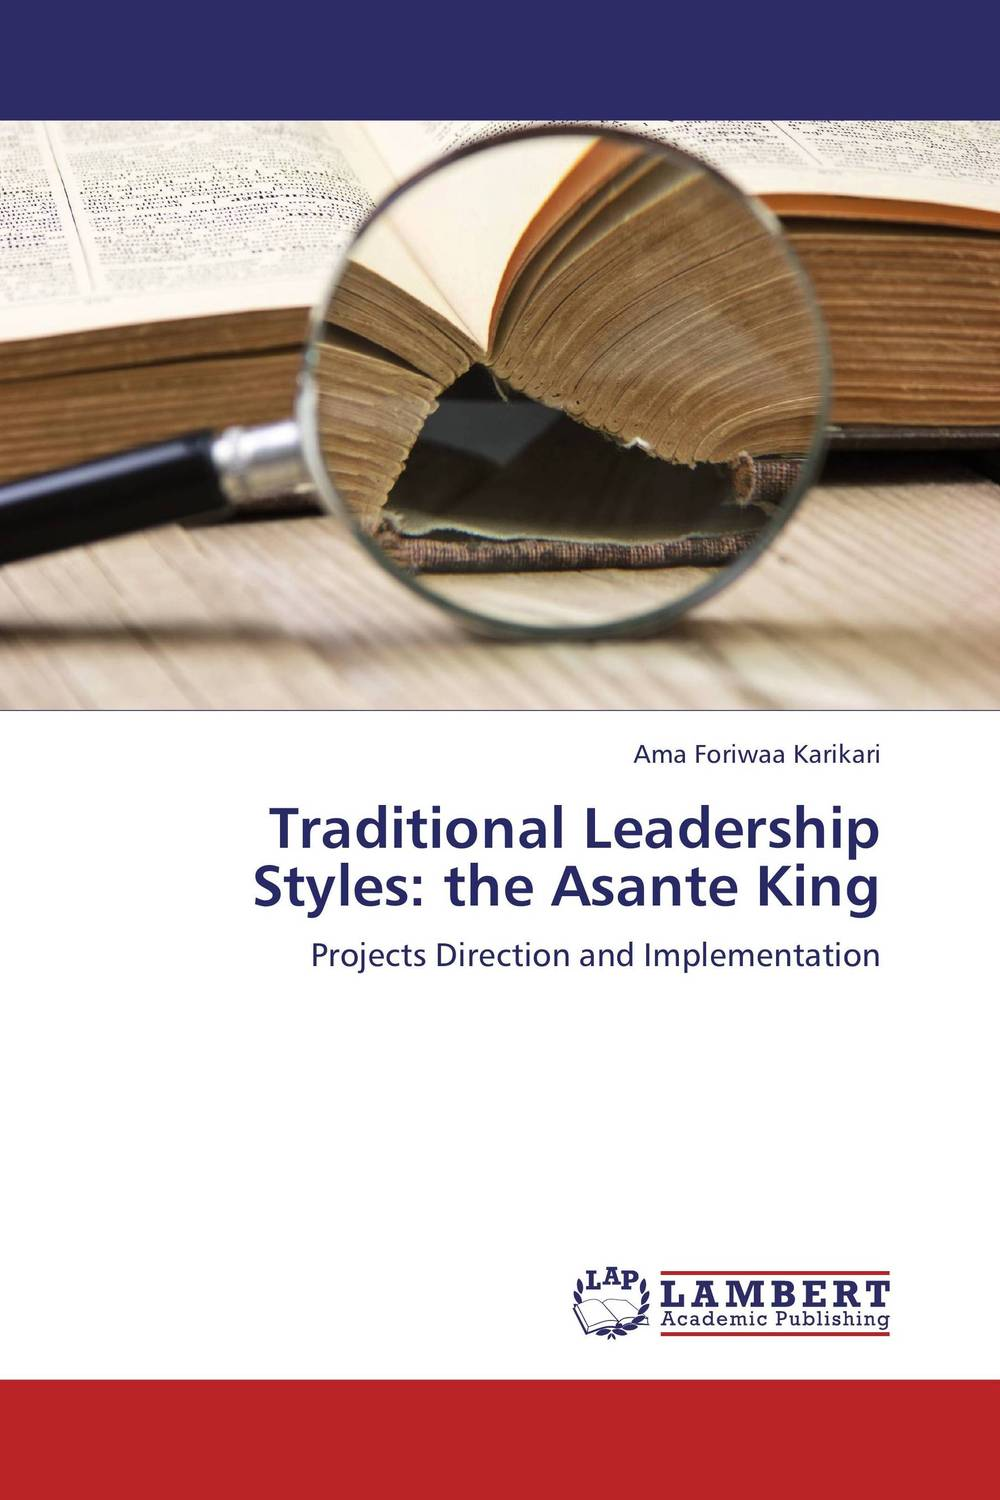 Traditional Leadership Styles: the Asante King thomas cleary the book of leadership and strategy